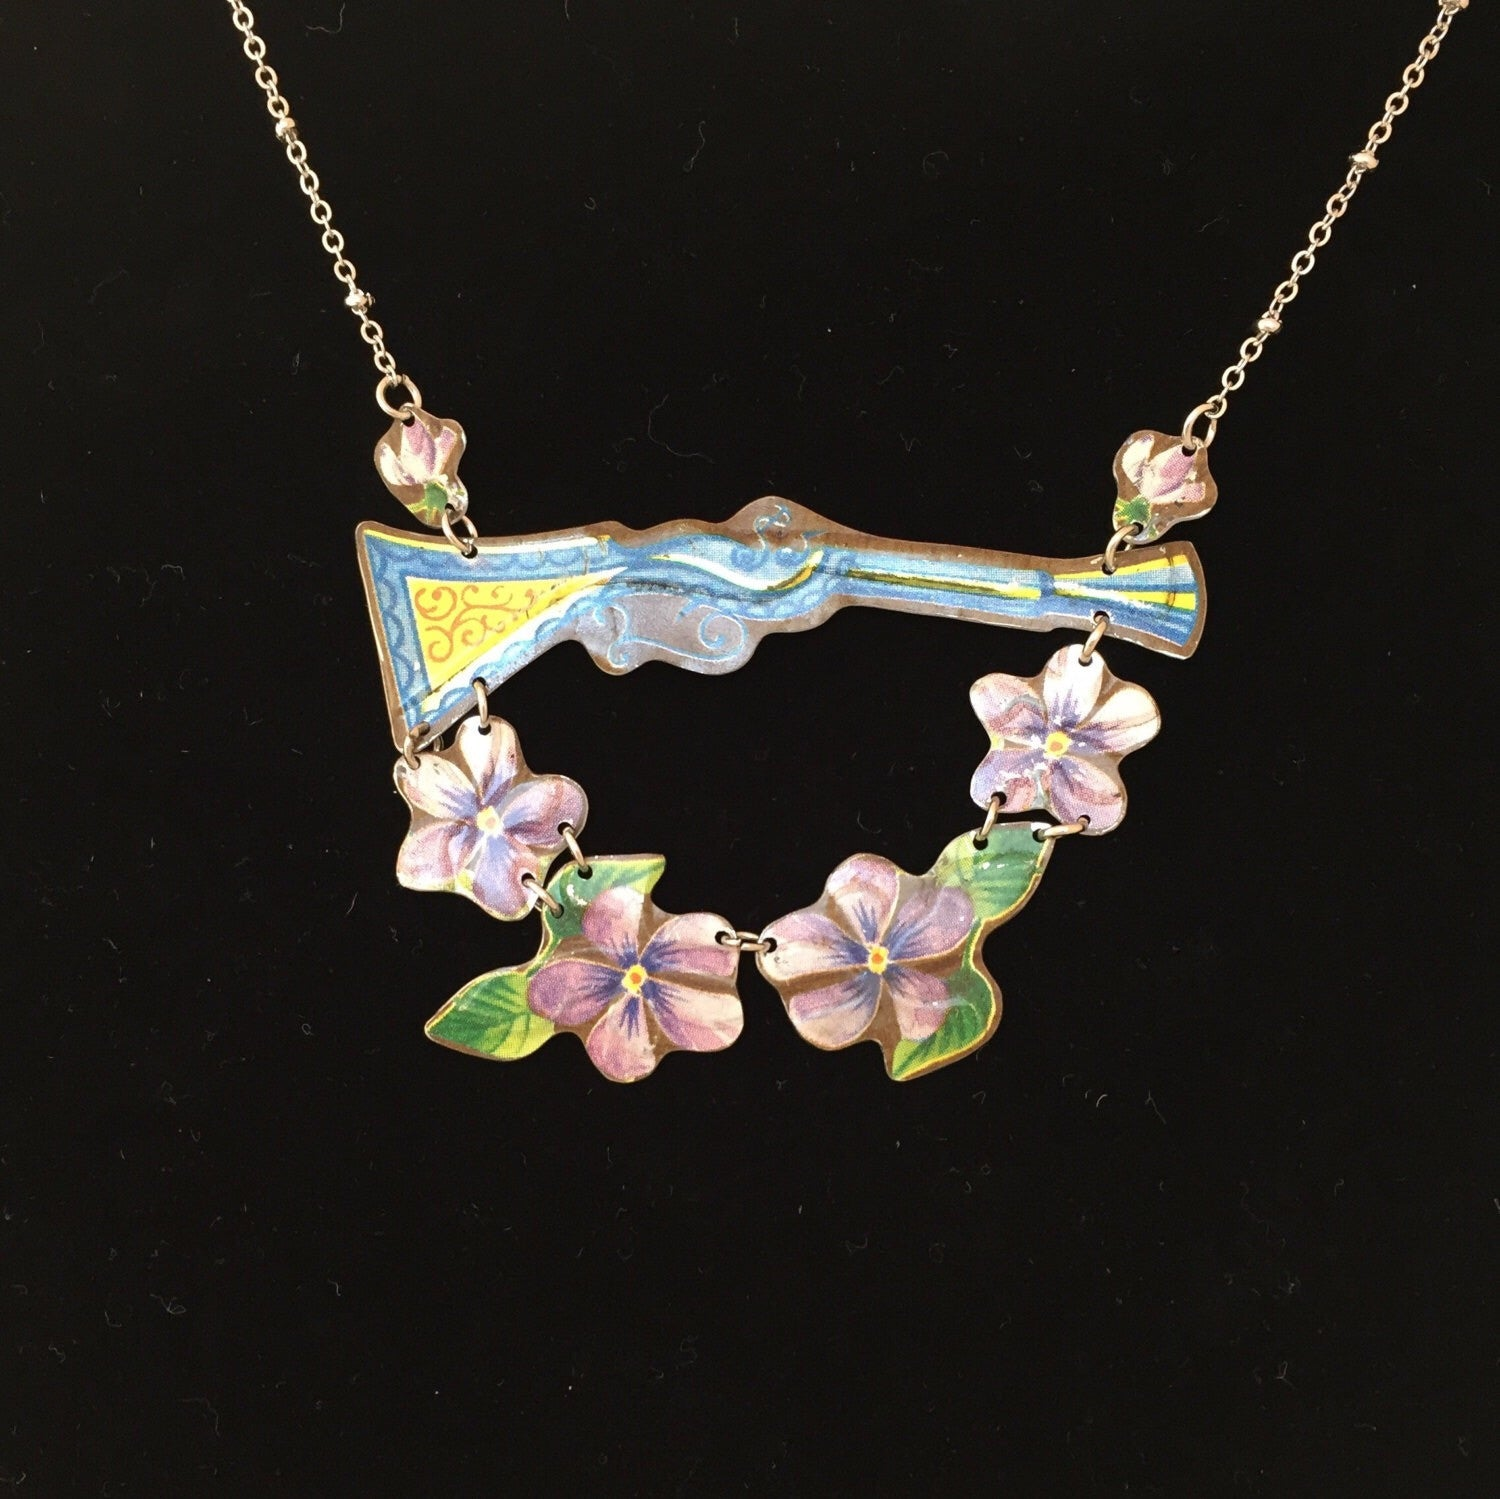 Western jewelry - statement necklace